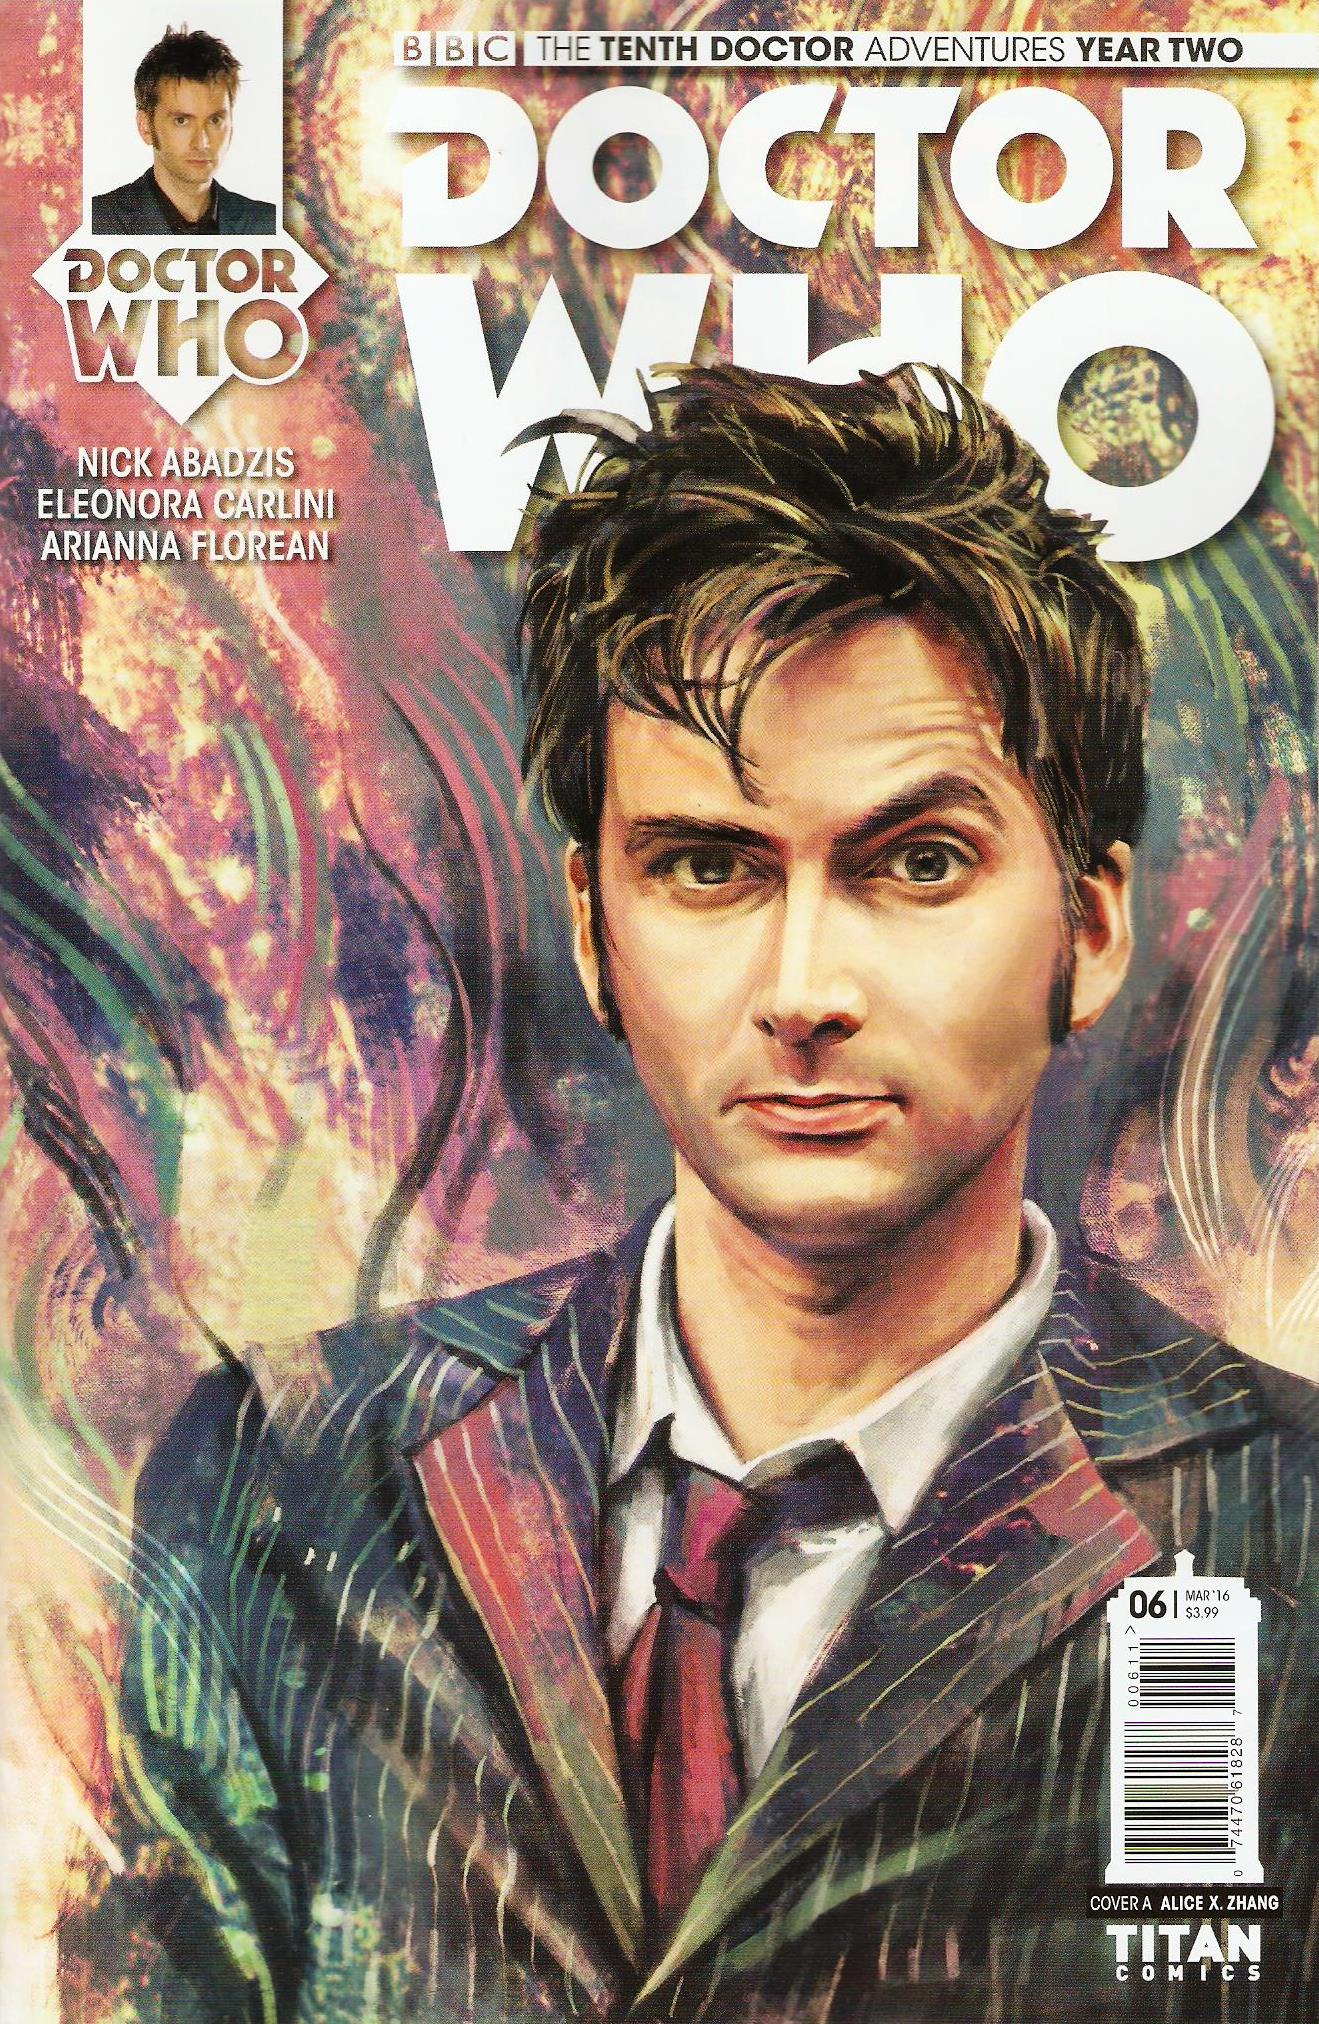 Tenth doctor year 2 issue 6a